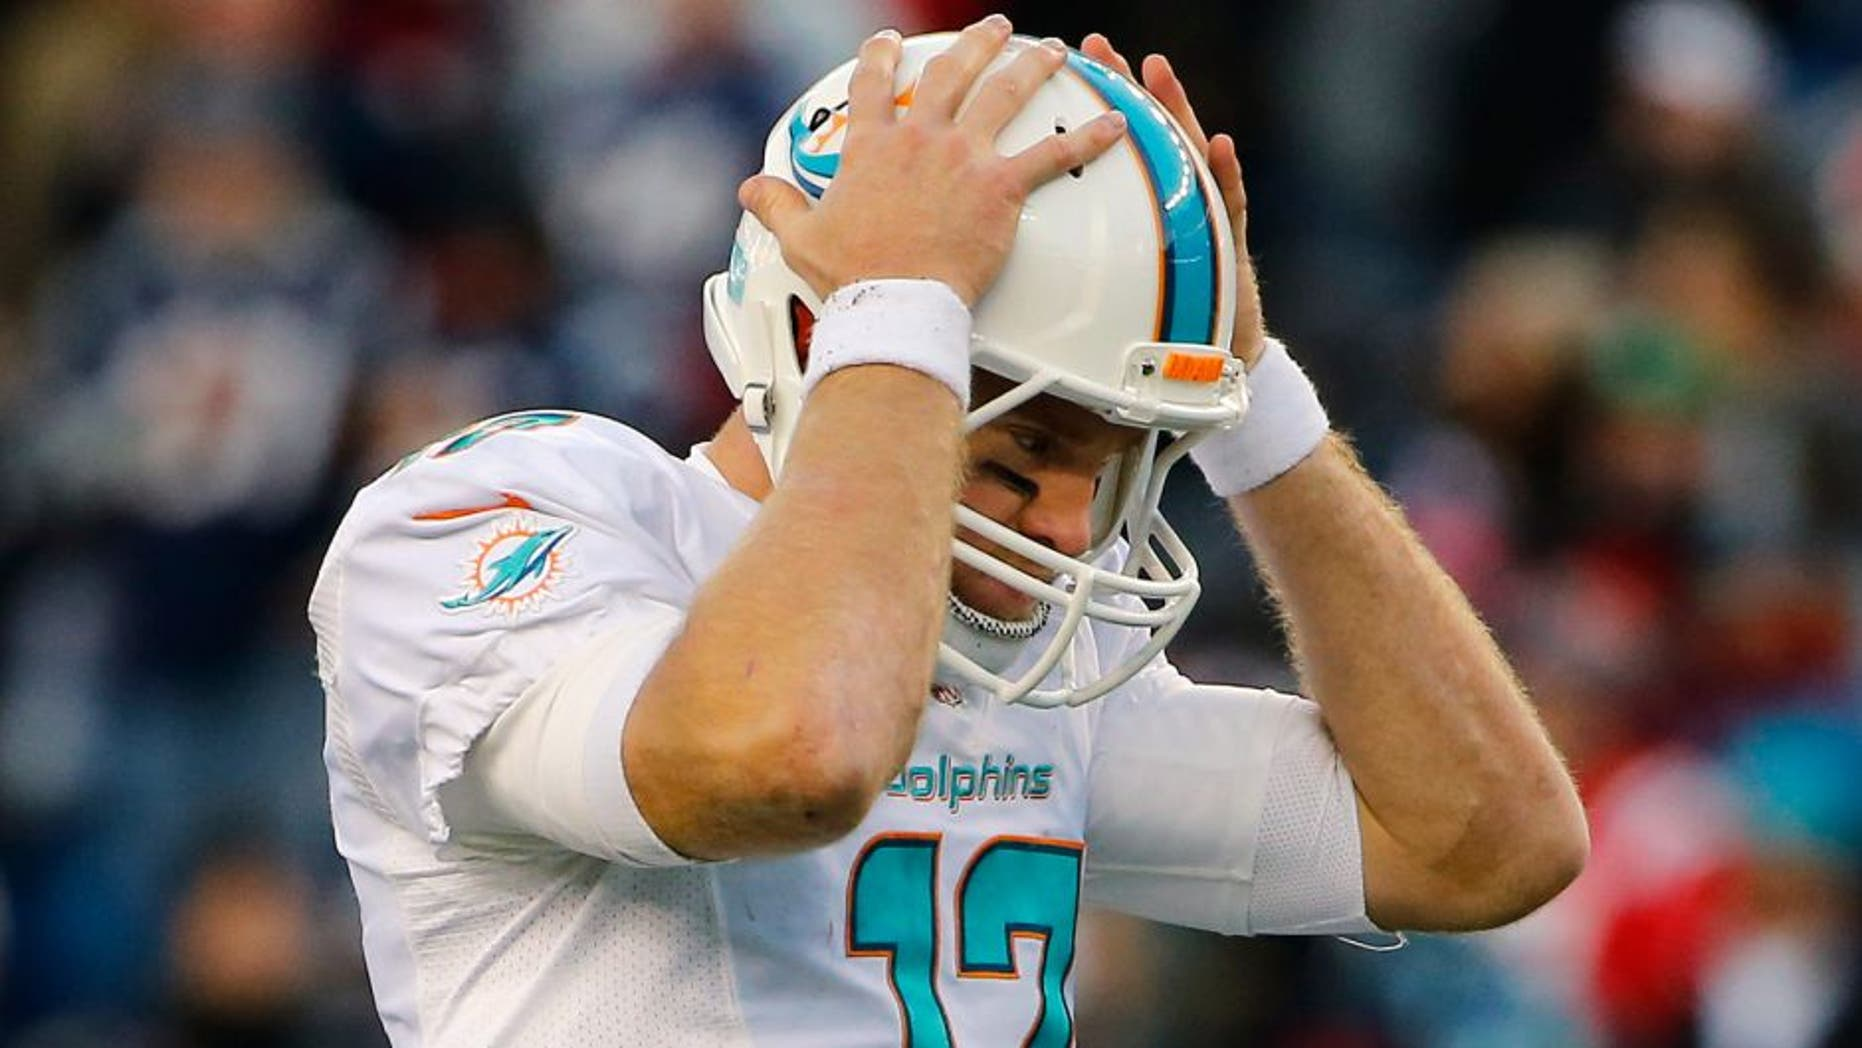 Dec 14, 2014; Foxborough, MA, USA; Miami Dolphins quarterback Ryan Tannehill (17) reacts to a missed pass during the second half against the New England Patriots at Gillette Stadium. The Patriots won 41-13. Mandatory Credit: Winslow Townson-USA TODAY Sports